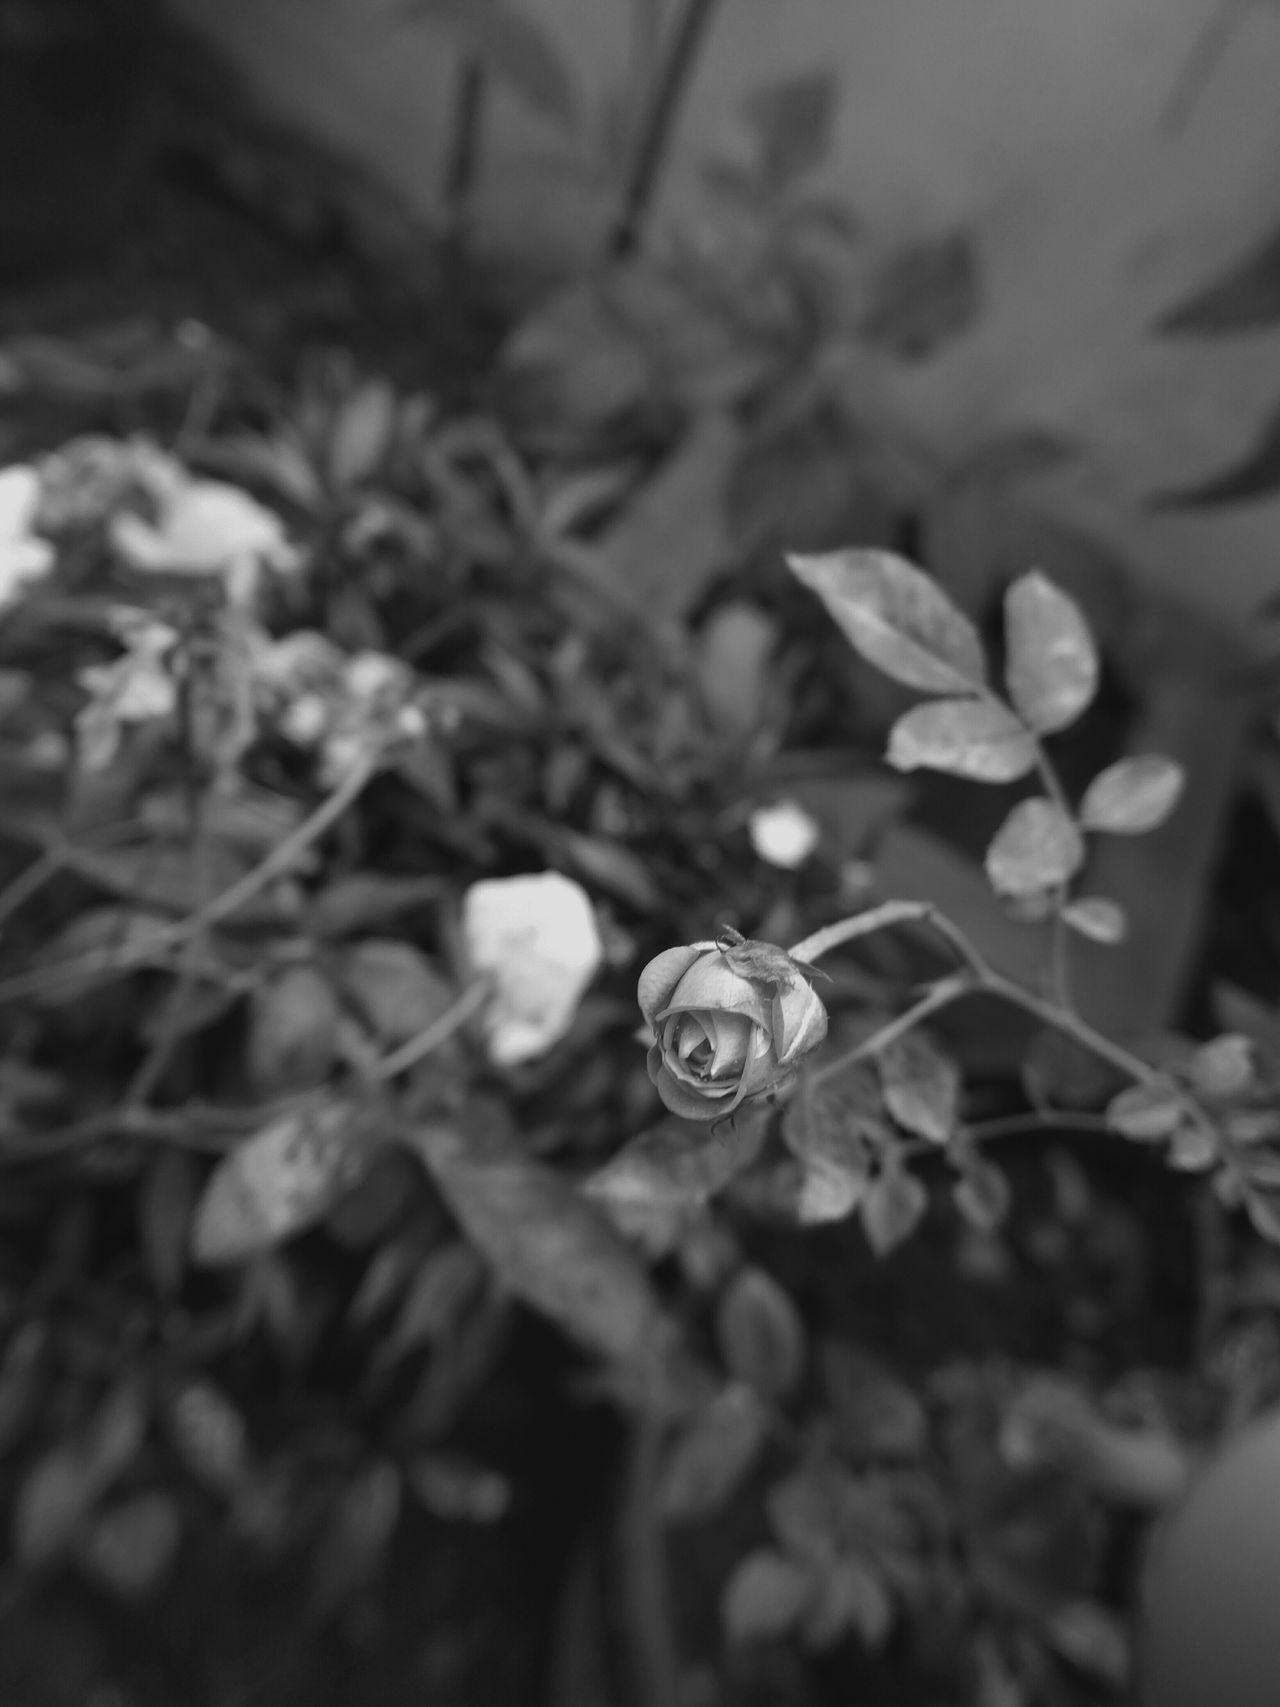 Monochrome Black&white Aiikos Garden Flowerporn Blackandwhitephotography Aiikos Black.n.white Black & White Flower Porn Flower Collection Aiikos Flowers Roses Flower Aiikos Heaven Aiikos Dark Moods @aiiko Rose🌹 Roseporn Black And White Photography Blackandwhite Photography